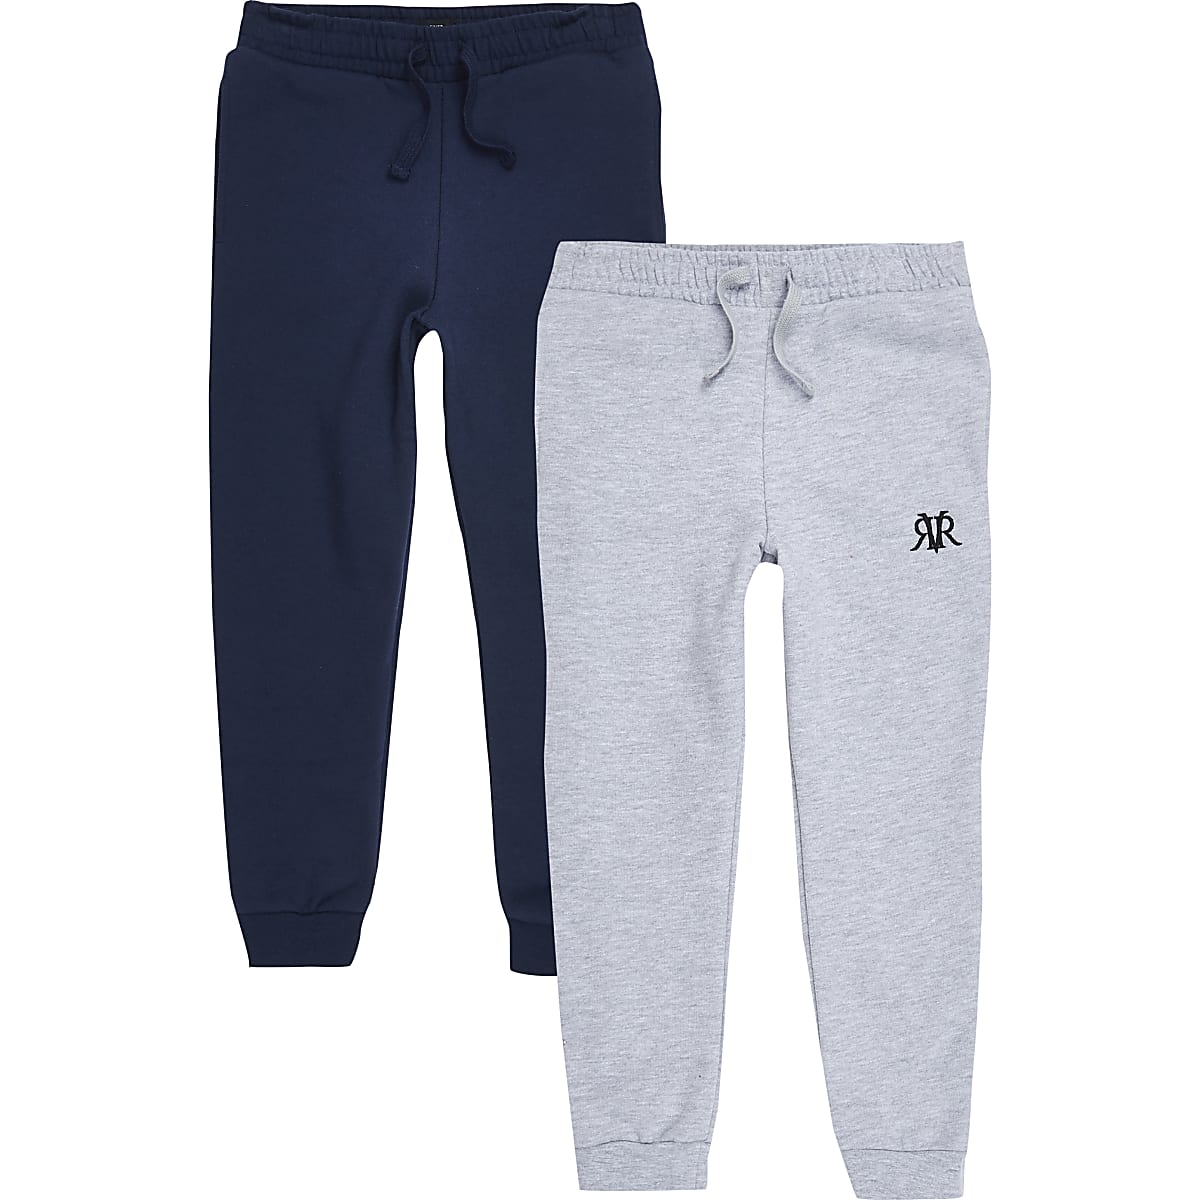 Boys navy and grey RI jogger multipack